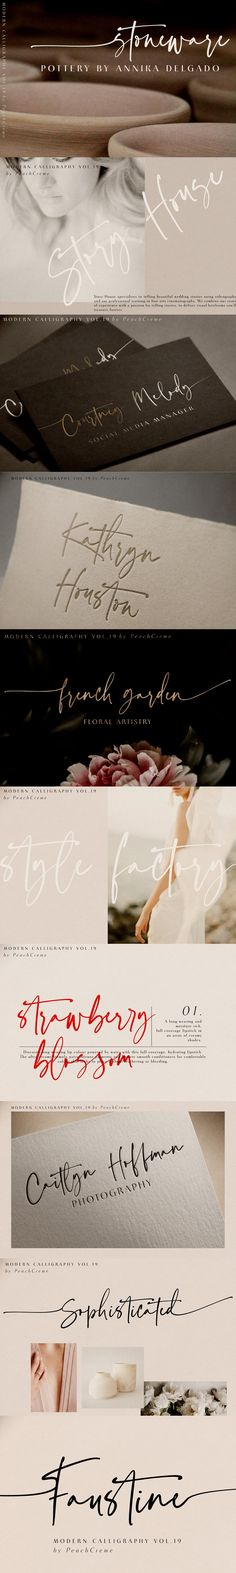 Faustine //Modern Script Uppercase And Lowercase Letters, Modern Fonts, Script Fonts, Glyphs, Lower Case Letters, Hand Lettering, Im Not Perfect, Typography, Photoshop